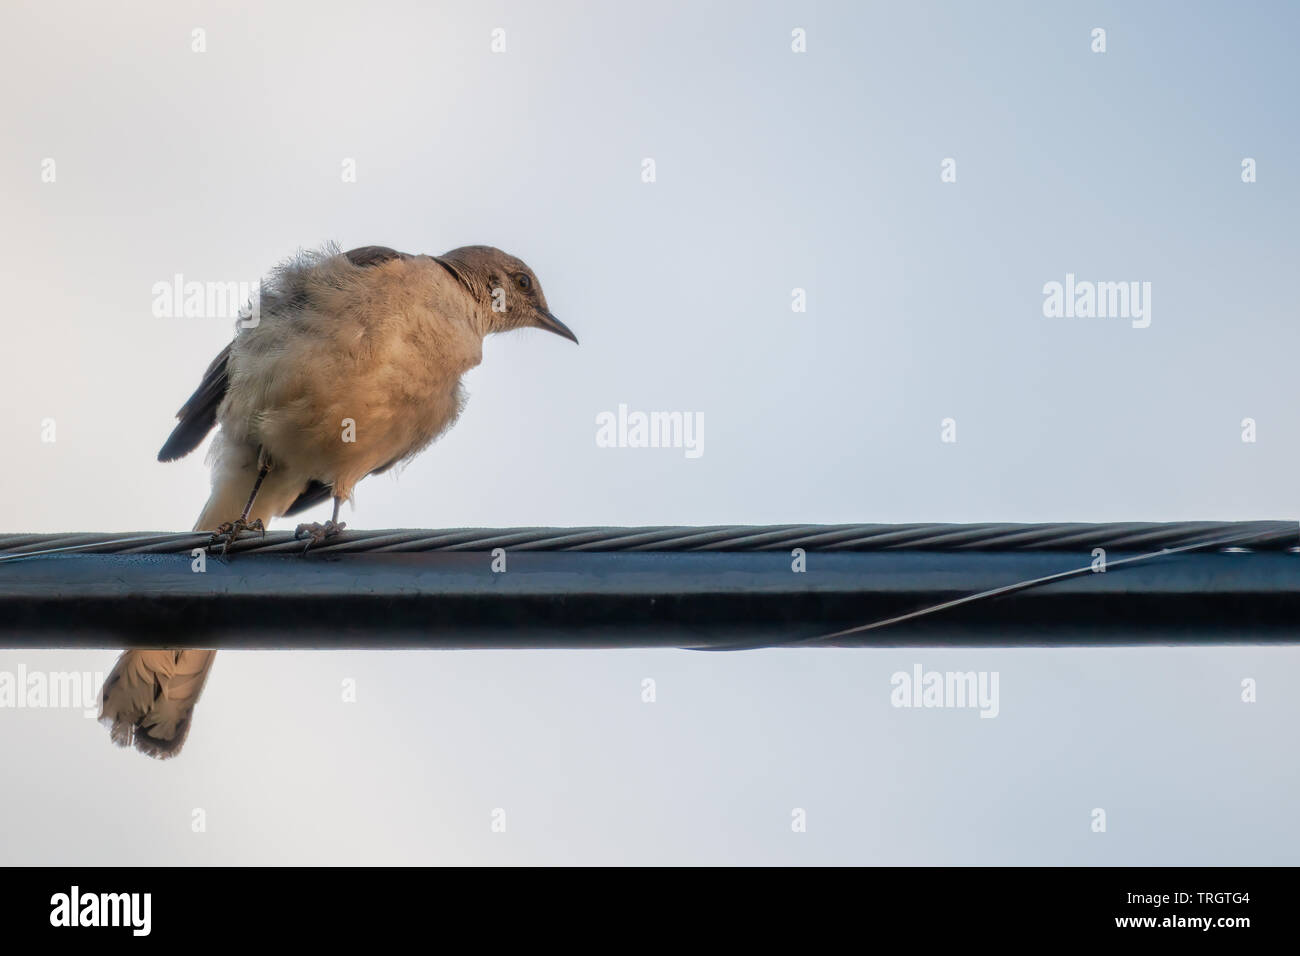 Florida state bird, the mocking bird. Pearched on cable wire. - Stock Image